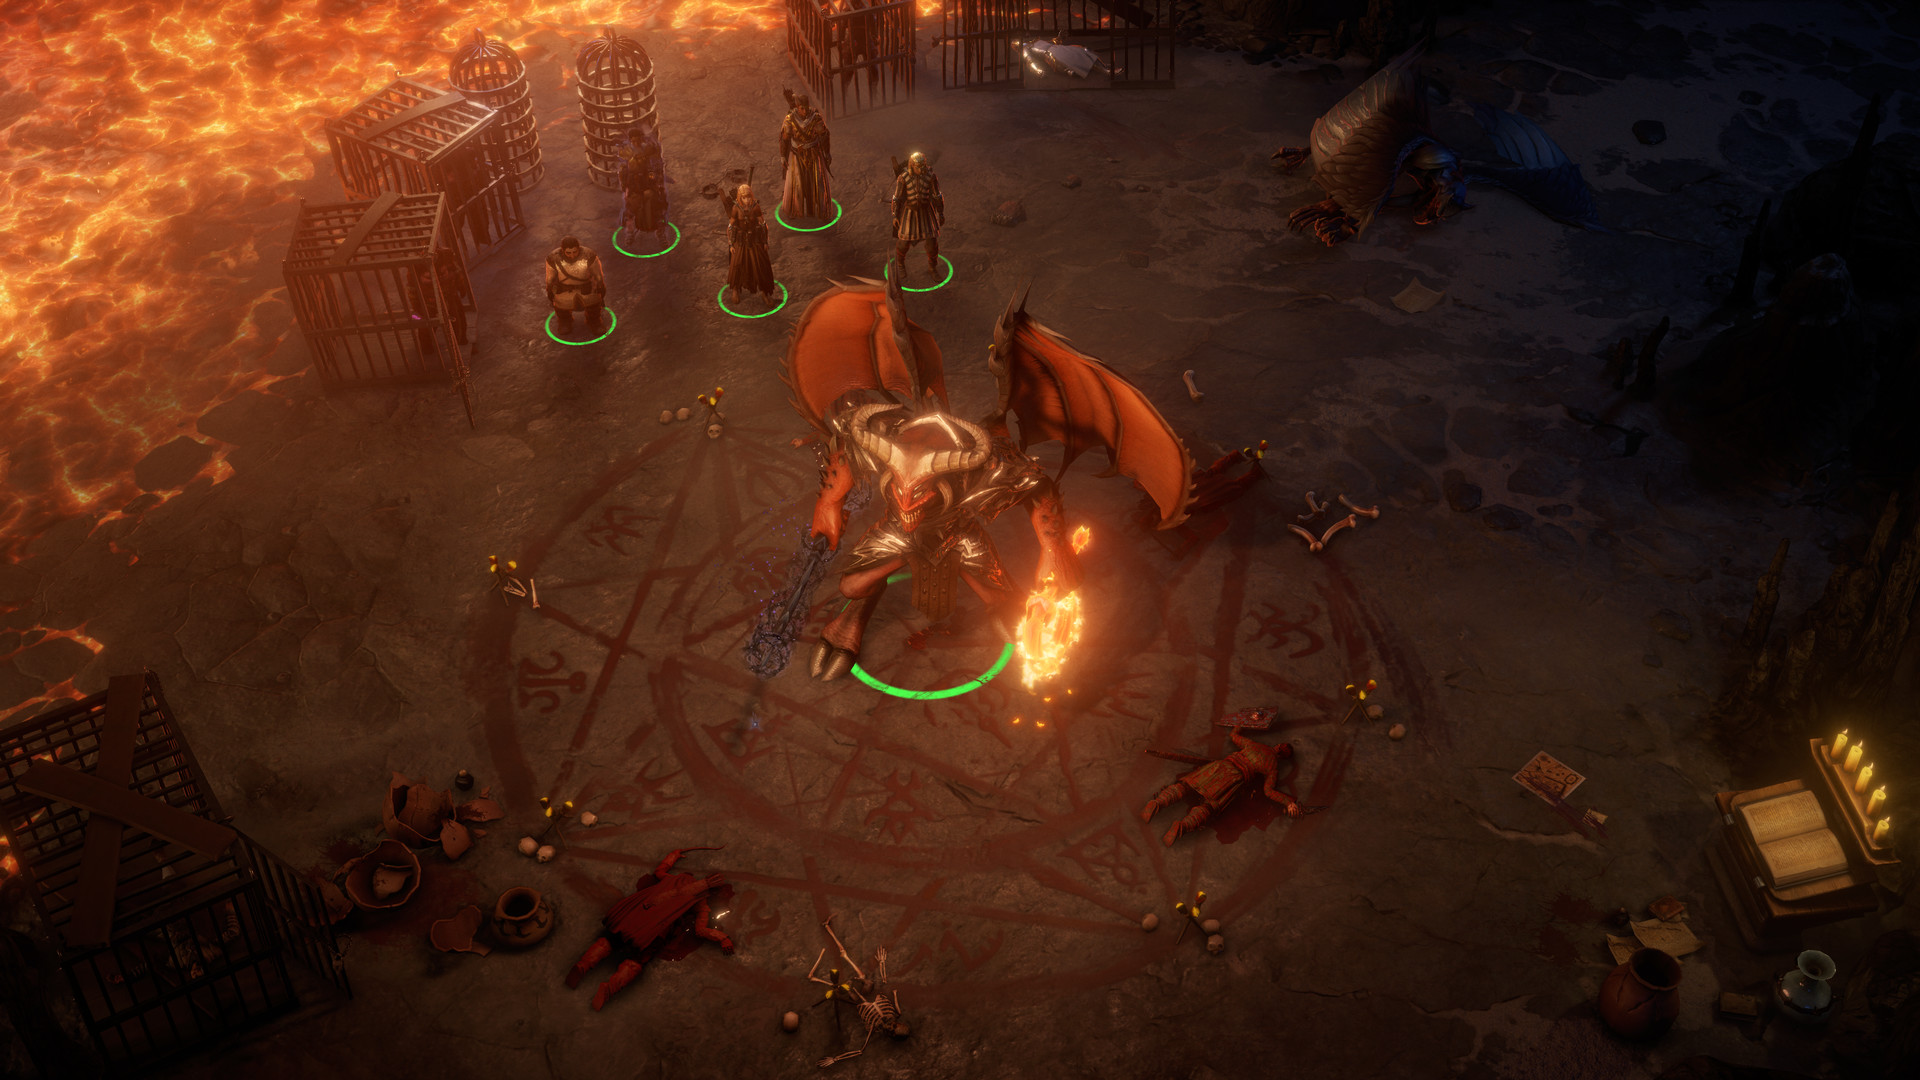 D&D descendant Pathfinder: Wrath of the Righteous is the biggest RPG on Steam